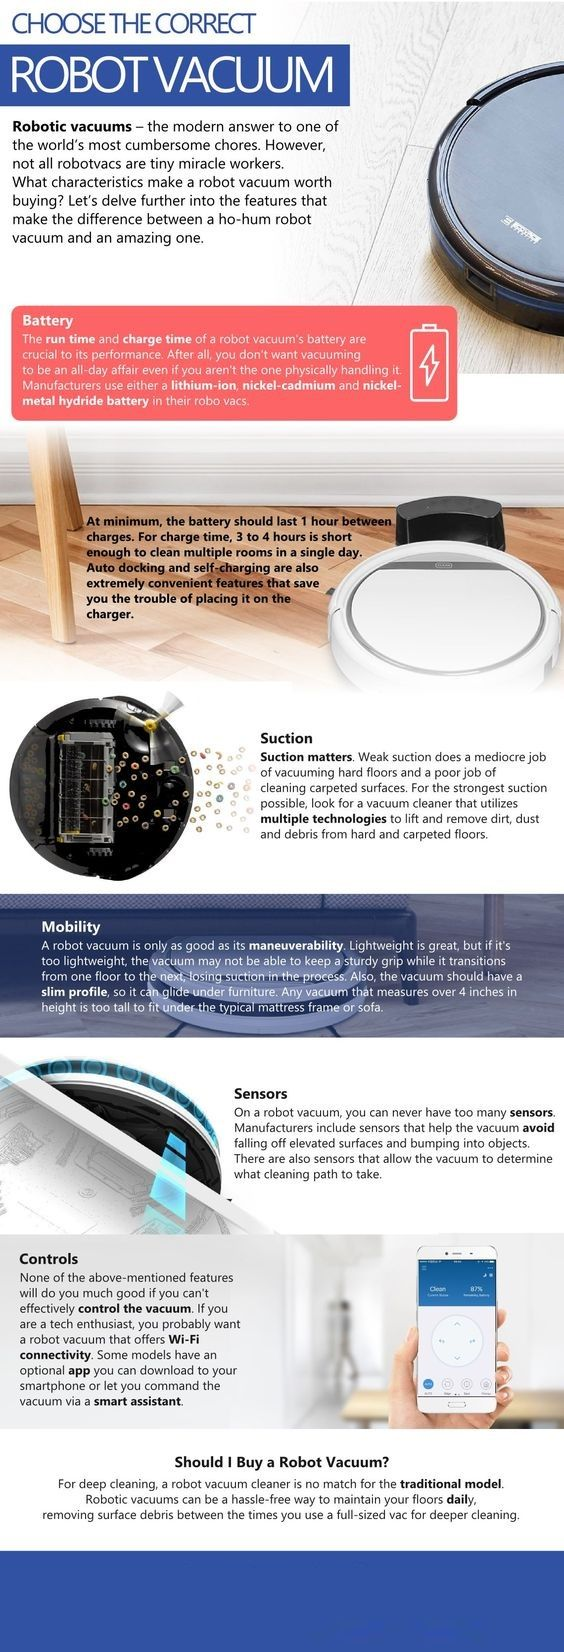 Basic-Guide-For-Choosing-A-Robot-Vacuum-Cleaner